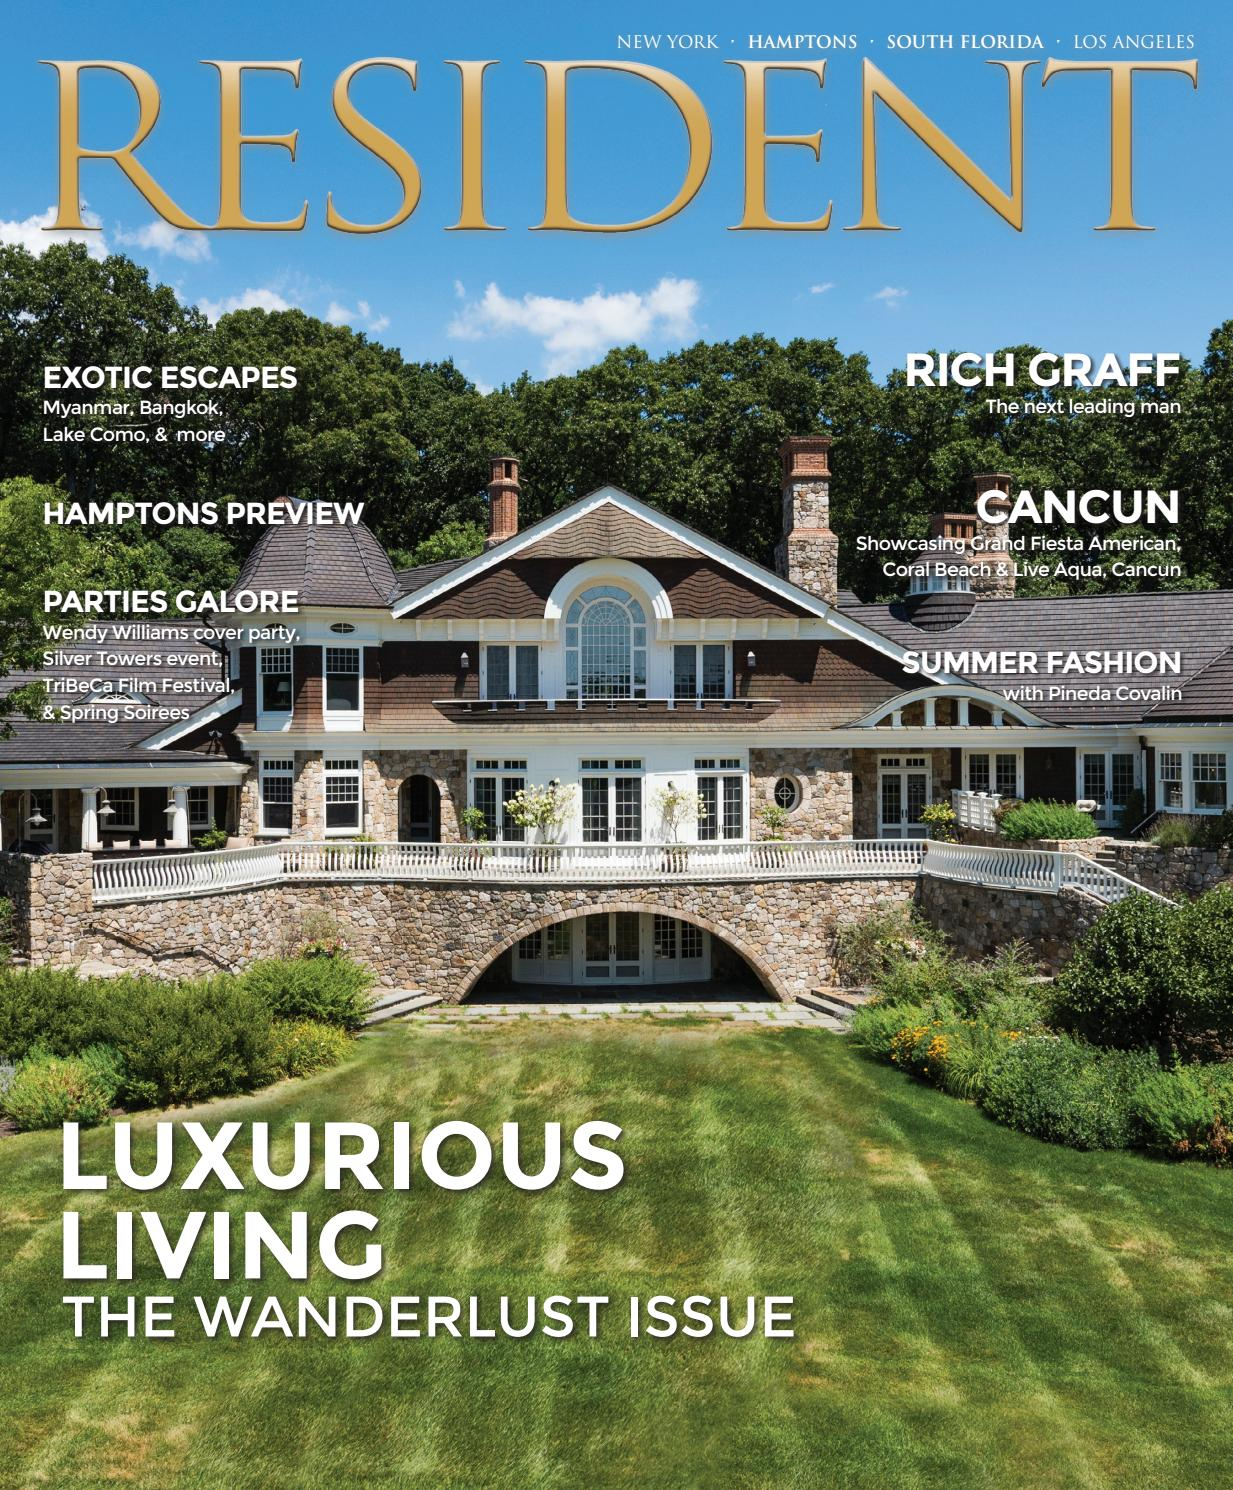 59c71b7314 Resident Magazine May 2017 Issue - Luxurious Living (New York ...